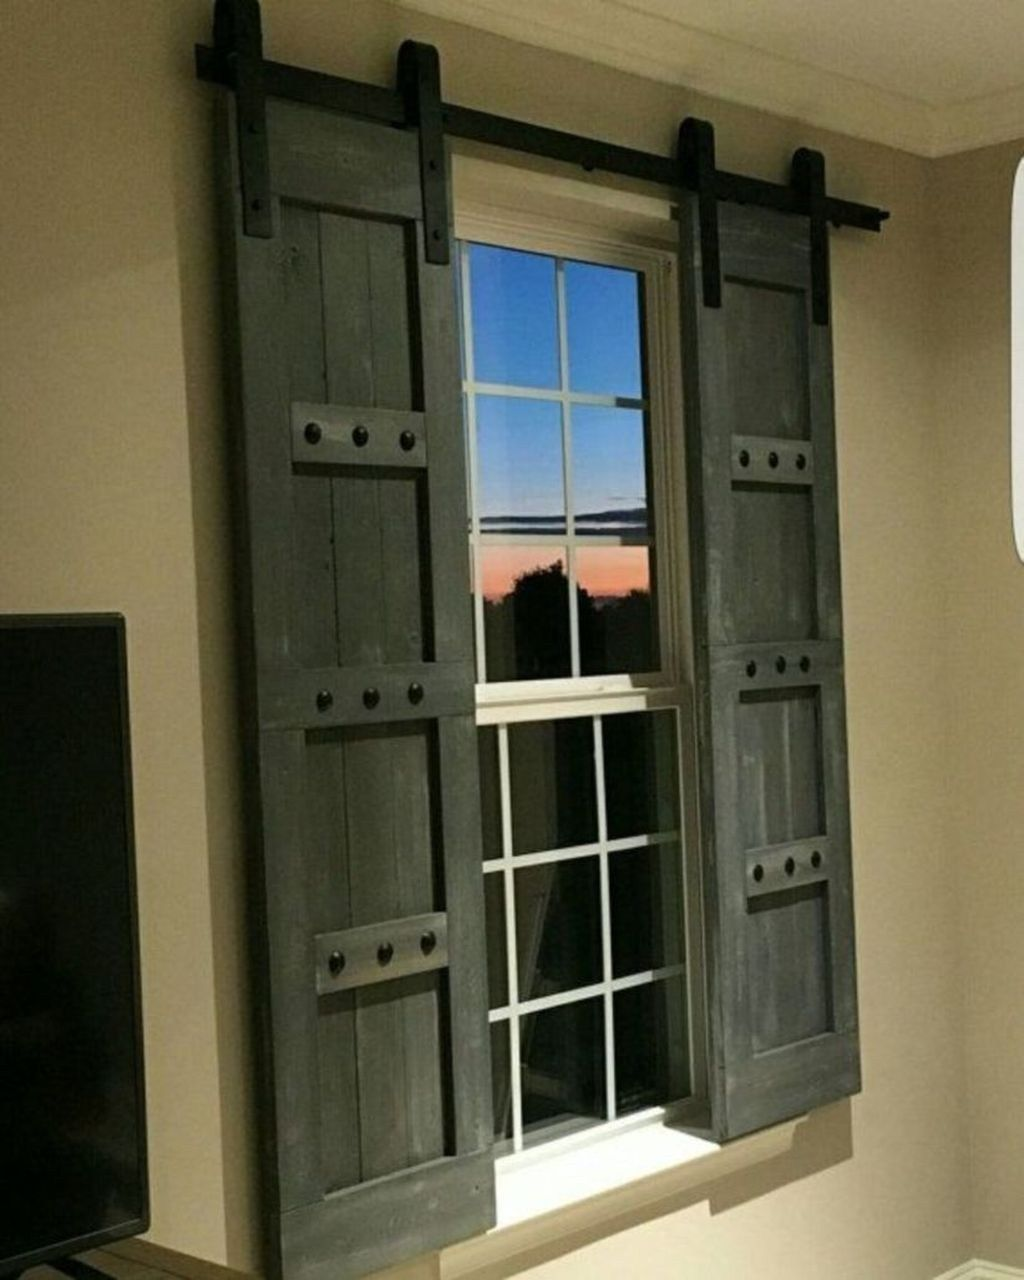 Lovely Exterior Window Shutter Design Ideas 17 Barn Door Shutters Sliding Shutters Interior Windows